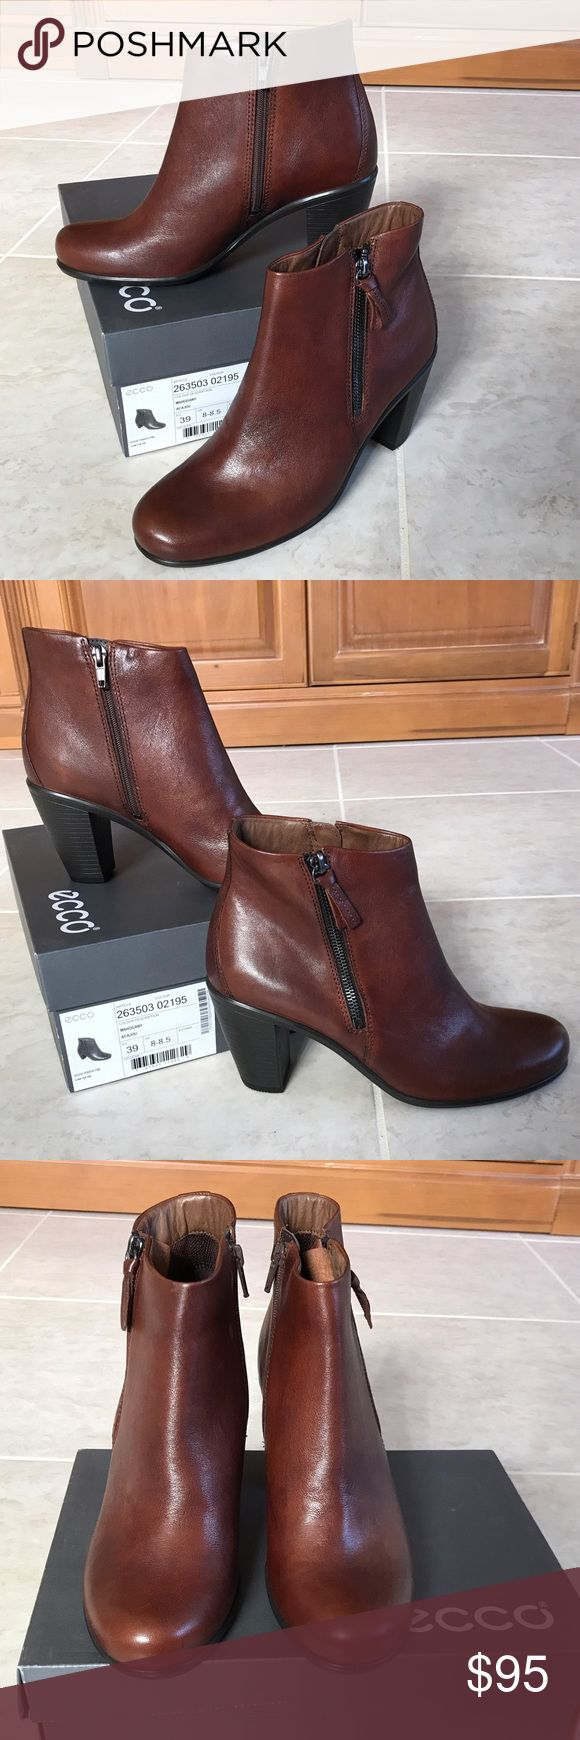 🎉NIB Ecco Mahogany Brown Leather Ankle Boots❤️ 🎉Brand new in box, Ecco super comfortable brown mahogany leather ankle boots. Heel measures a little over 3.5 inches. Size EU39 (or 8-8.5 according to the box). Rubber type heel sole construction for great traction! Double zippers for easy in and out! The leather smells good!!❤️ Ecco Shoes Ankle Boots & Booties